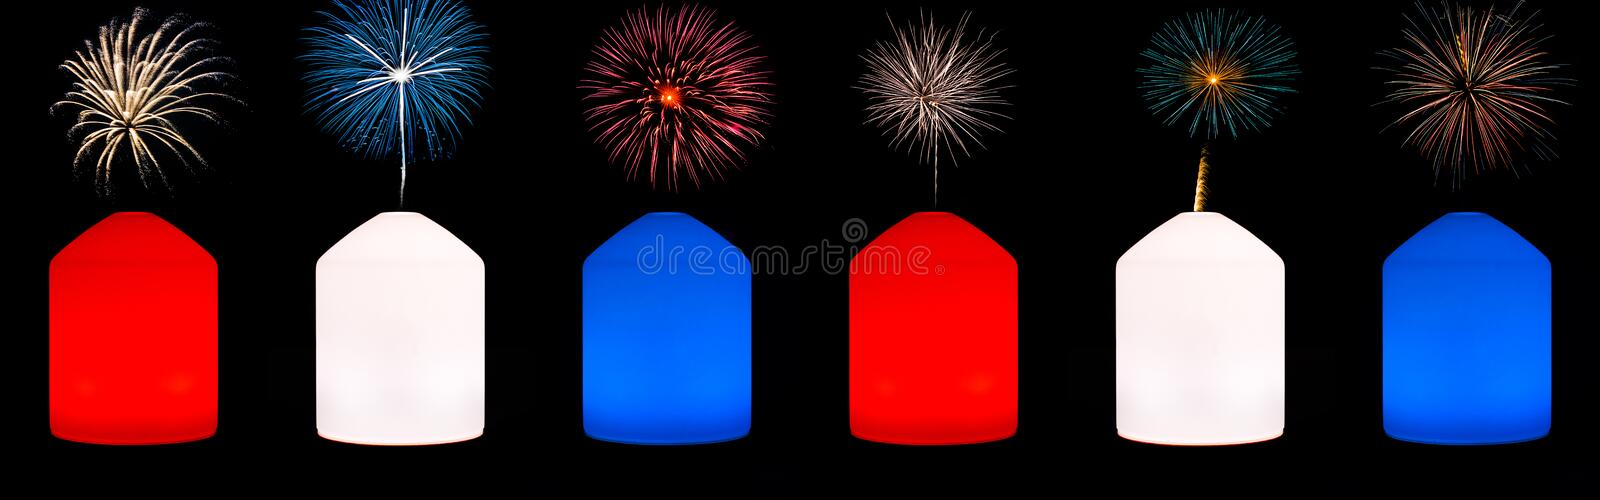 Multi colored objects and fireworks banner royalty free stock image